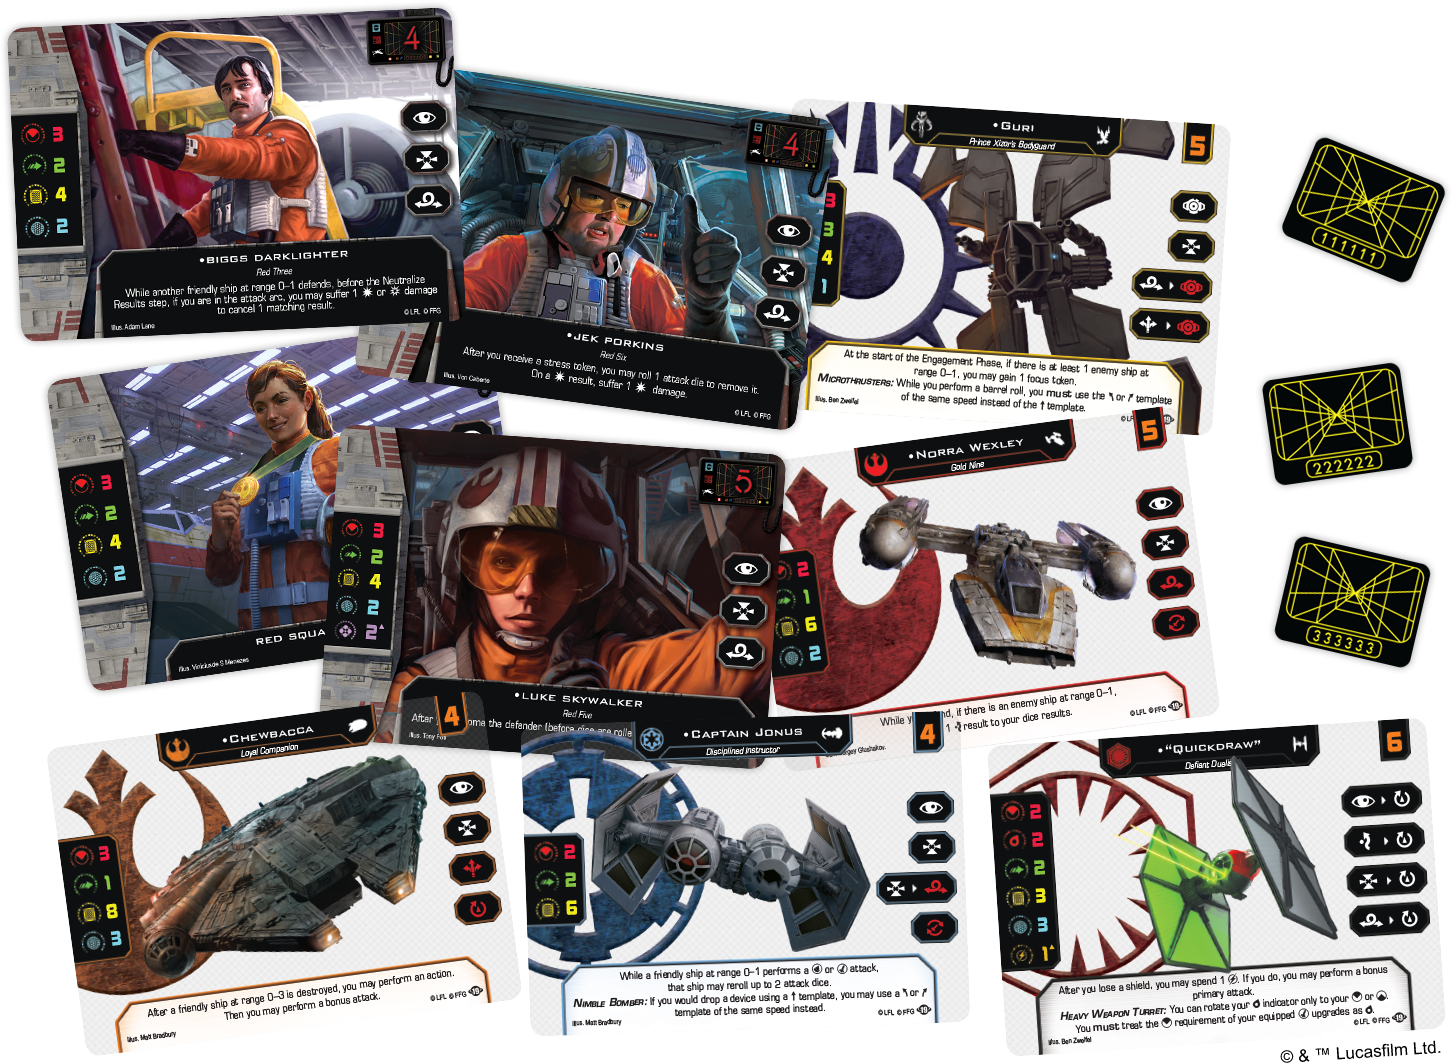 swz_prizewall_ffg.png